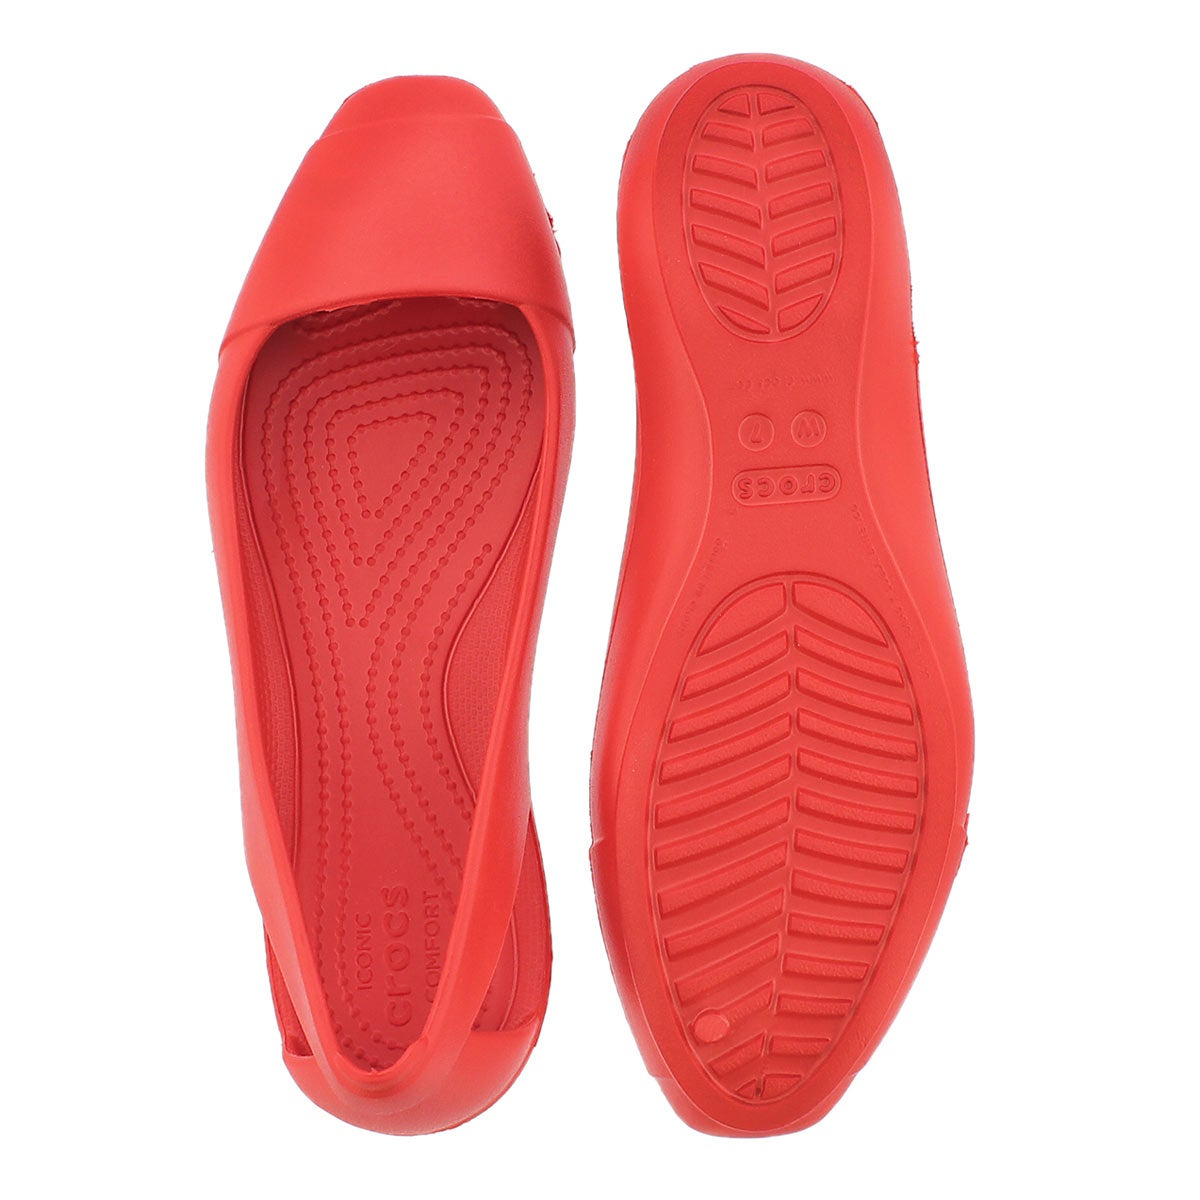 Lds Sienna flame slip on flat